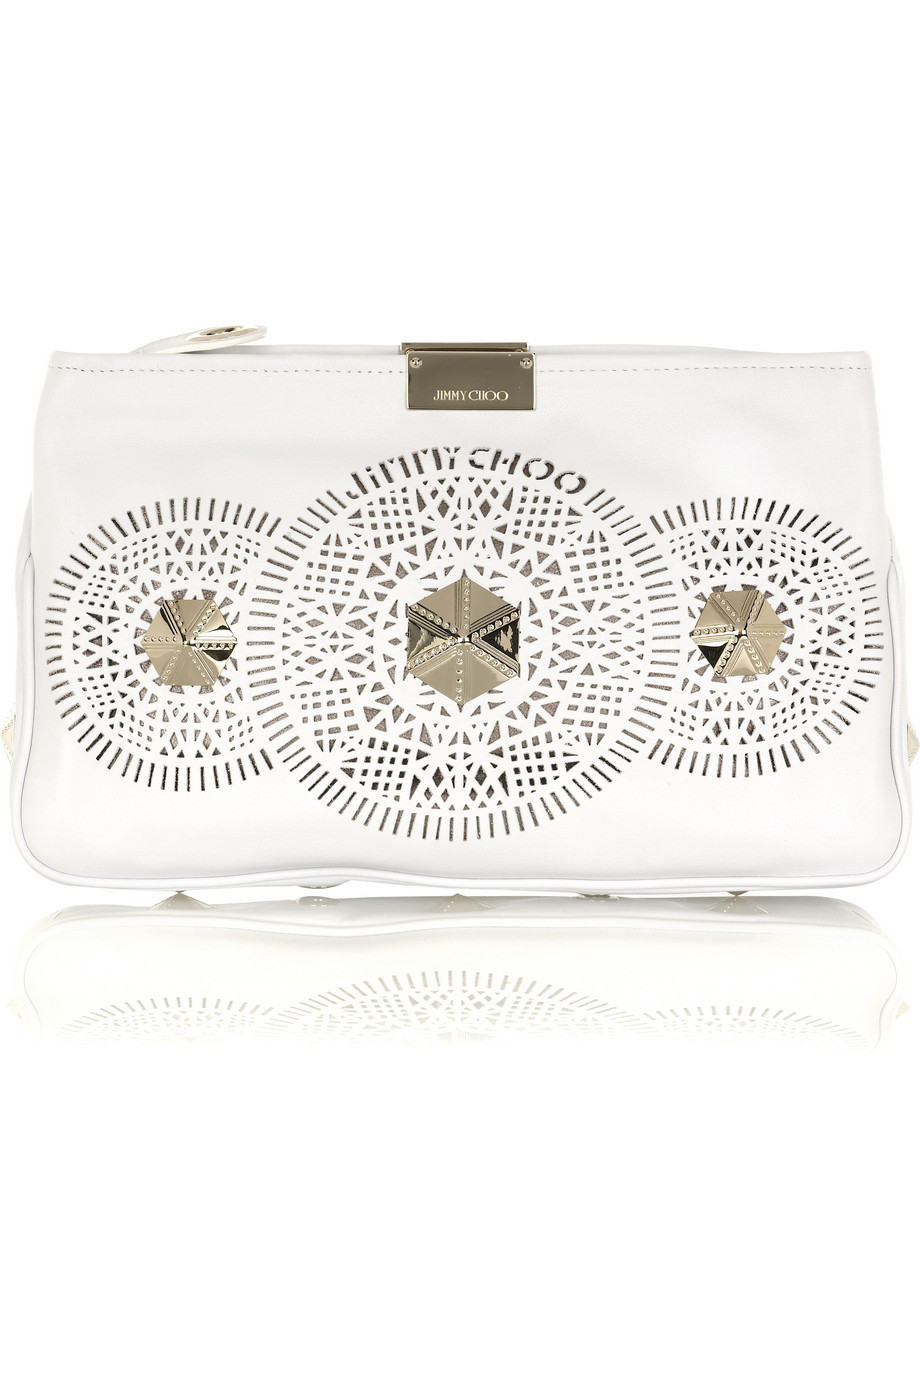 Jimmy Choo Zulu leather clutch  | NET-A-PORTER.COM from net-a-porter.com